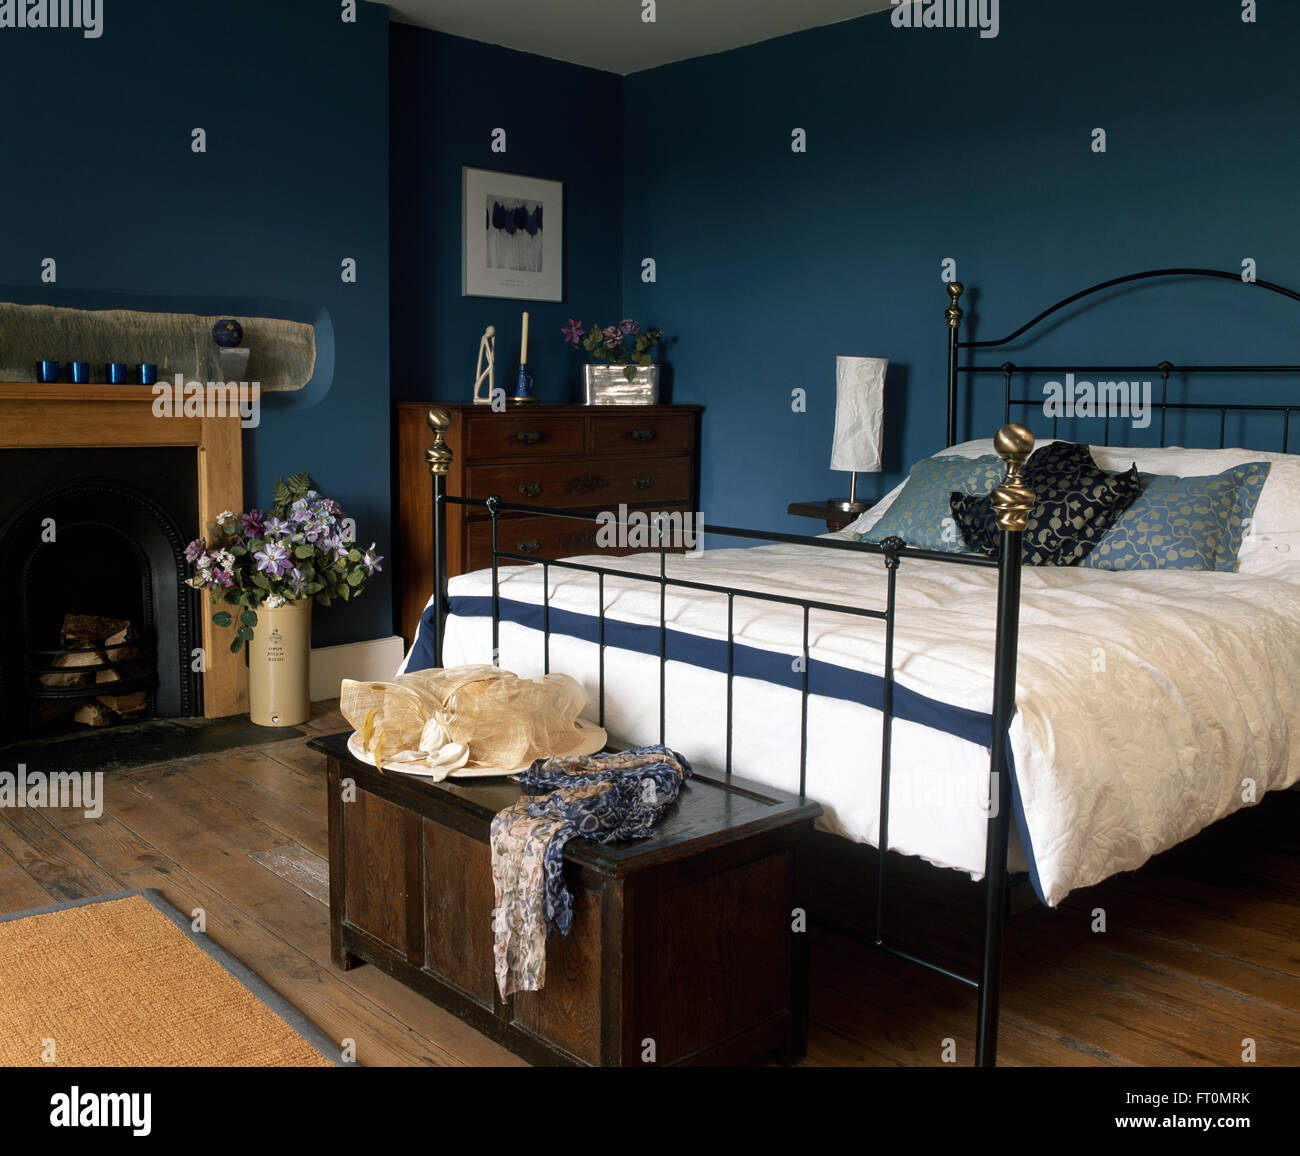 Picture of: Black Wrought Iron Bed With White Duvet In A Blue Bedroom With A Hat Stock Photo Alamy